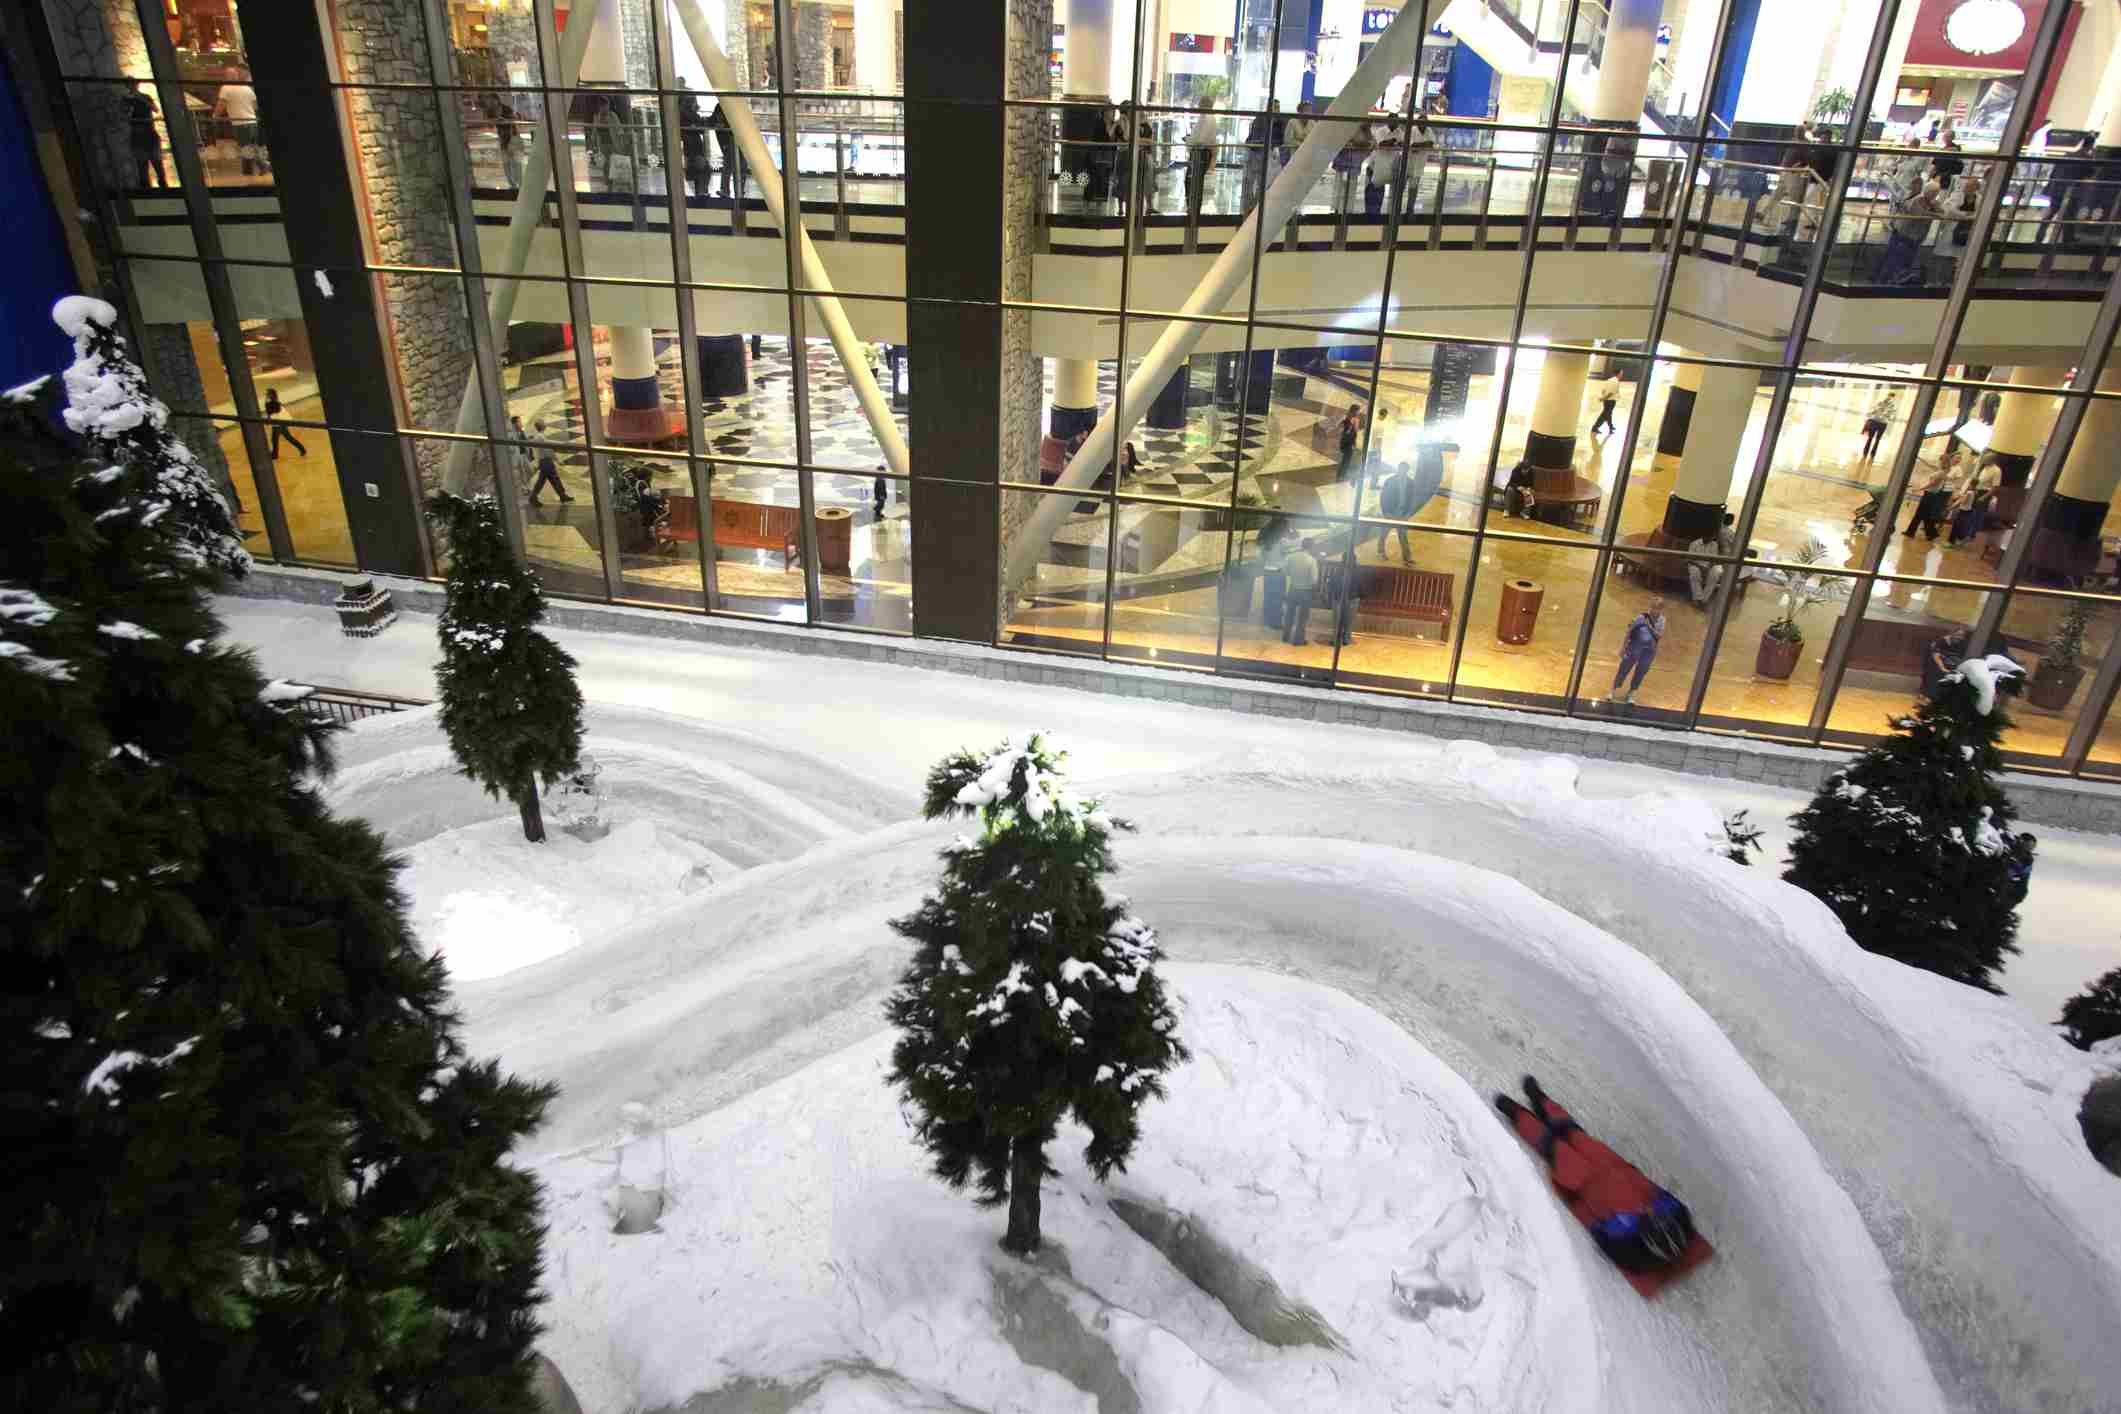 Dubai, Jumeirah, Snow Dome at the Mall of the Emirates